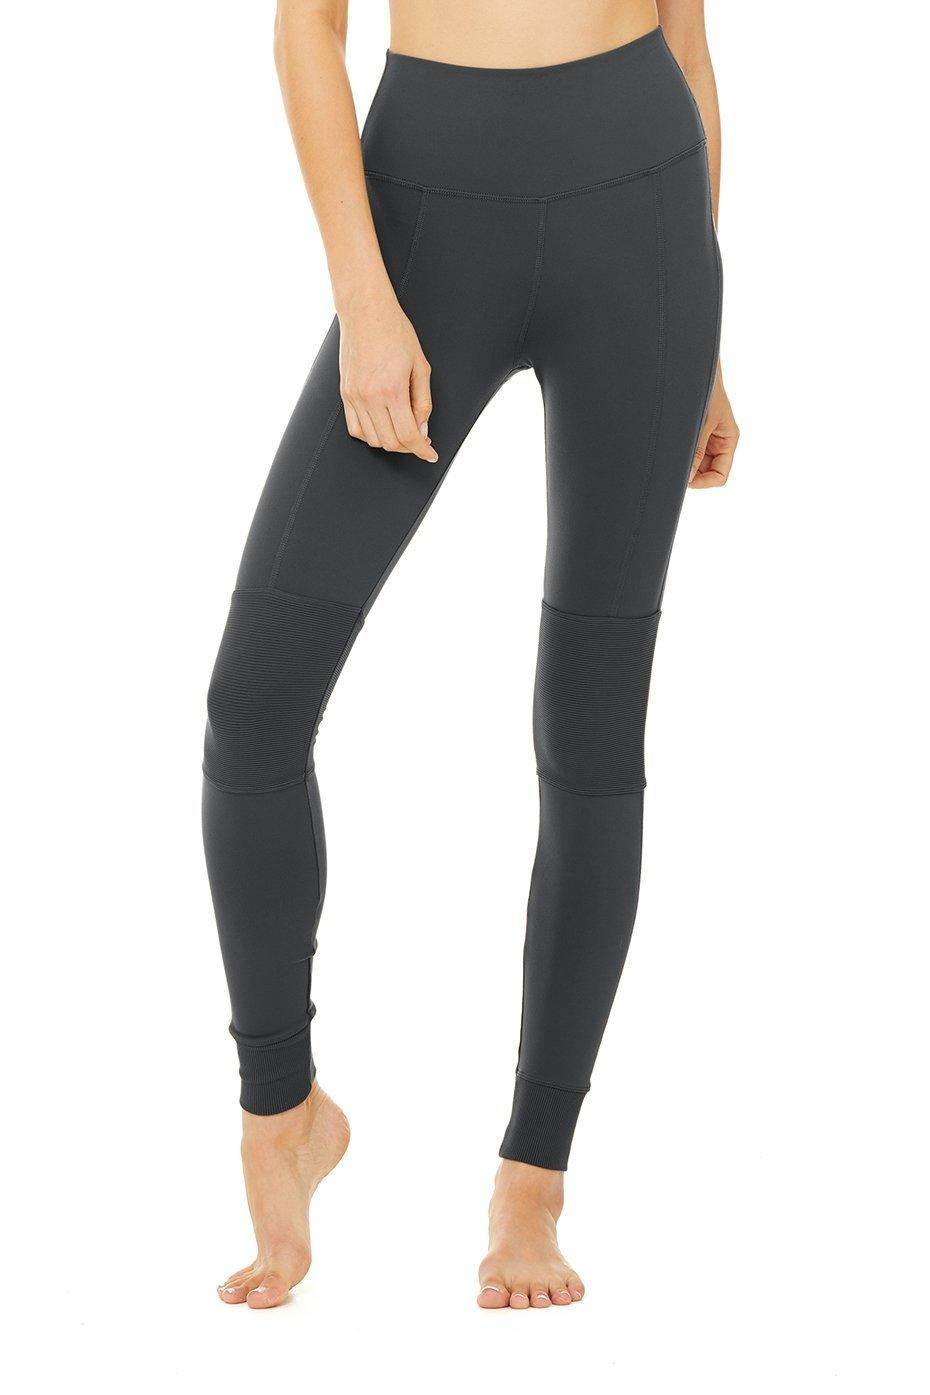 The High-Waist Avenue leggings are on sale now for Alo Yoga's Black Friday sale, $98 (originally $154).